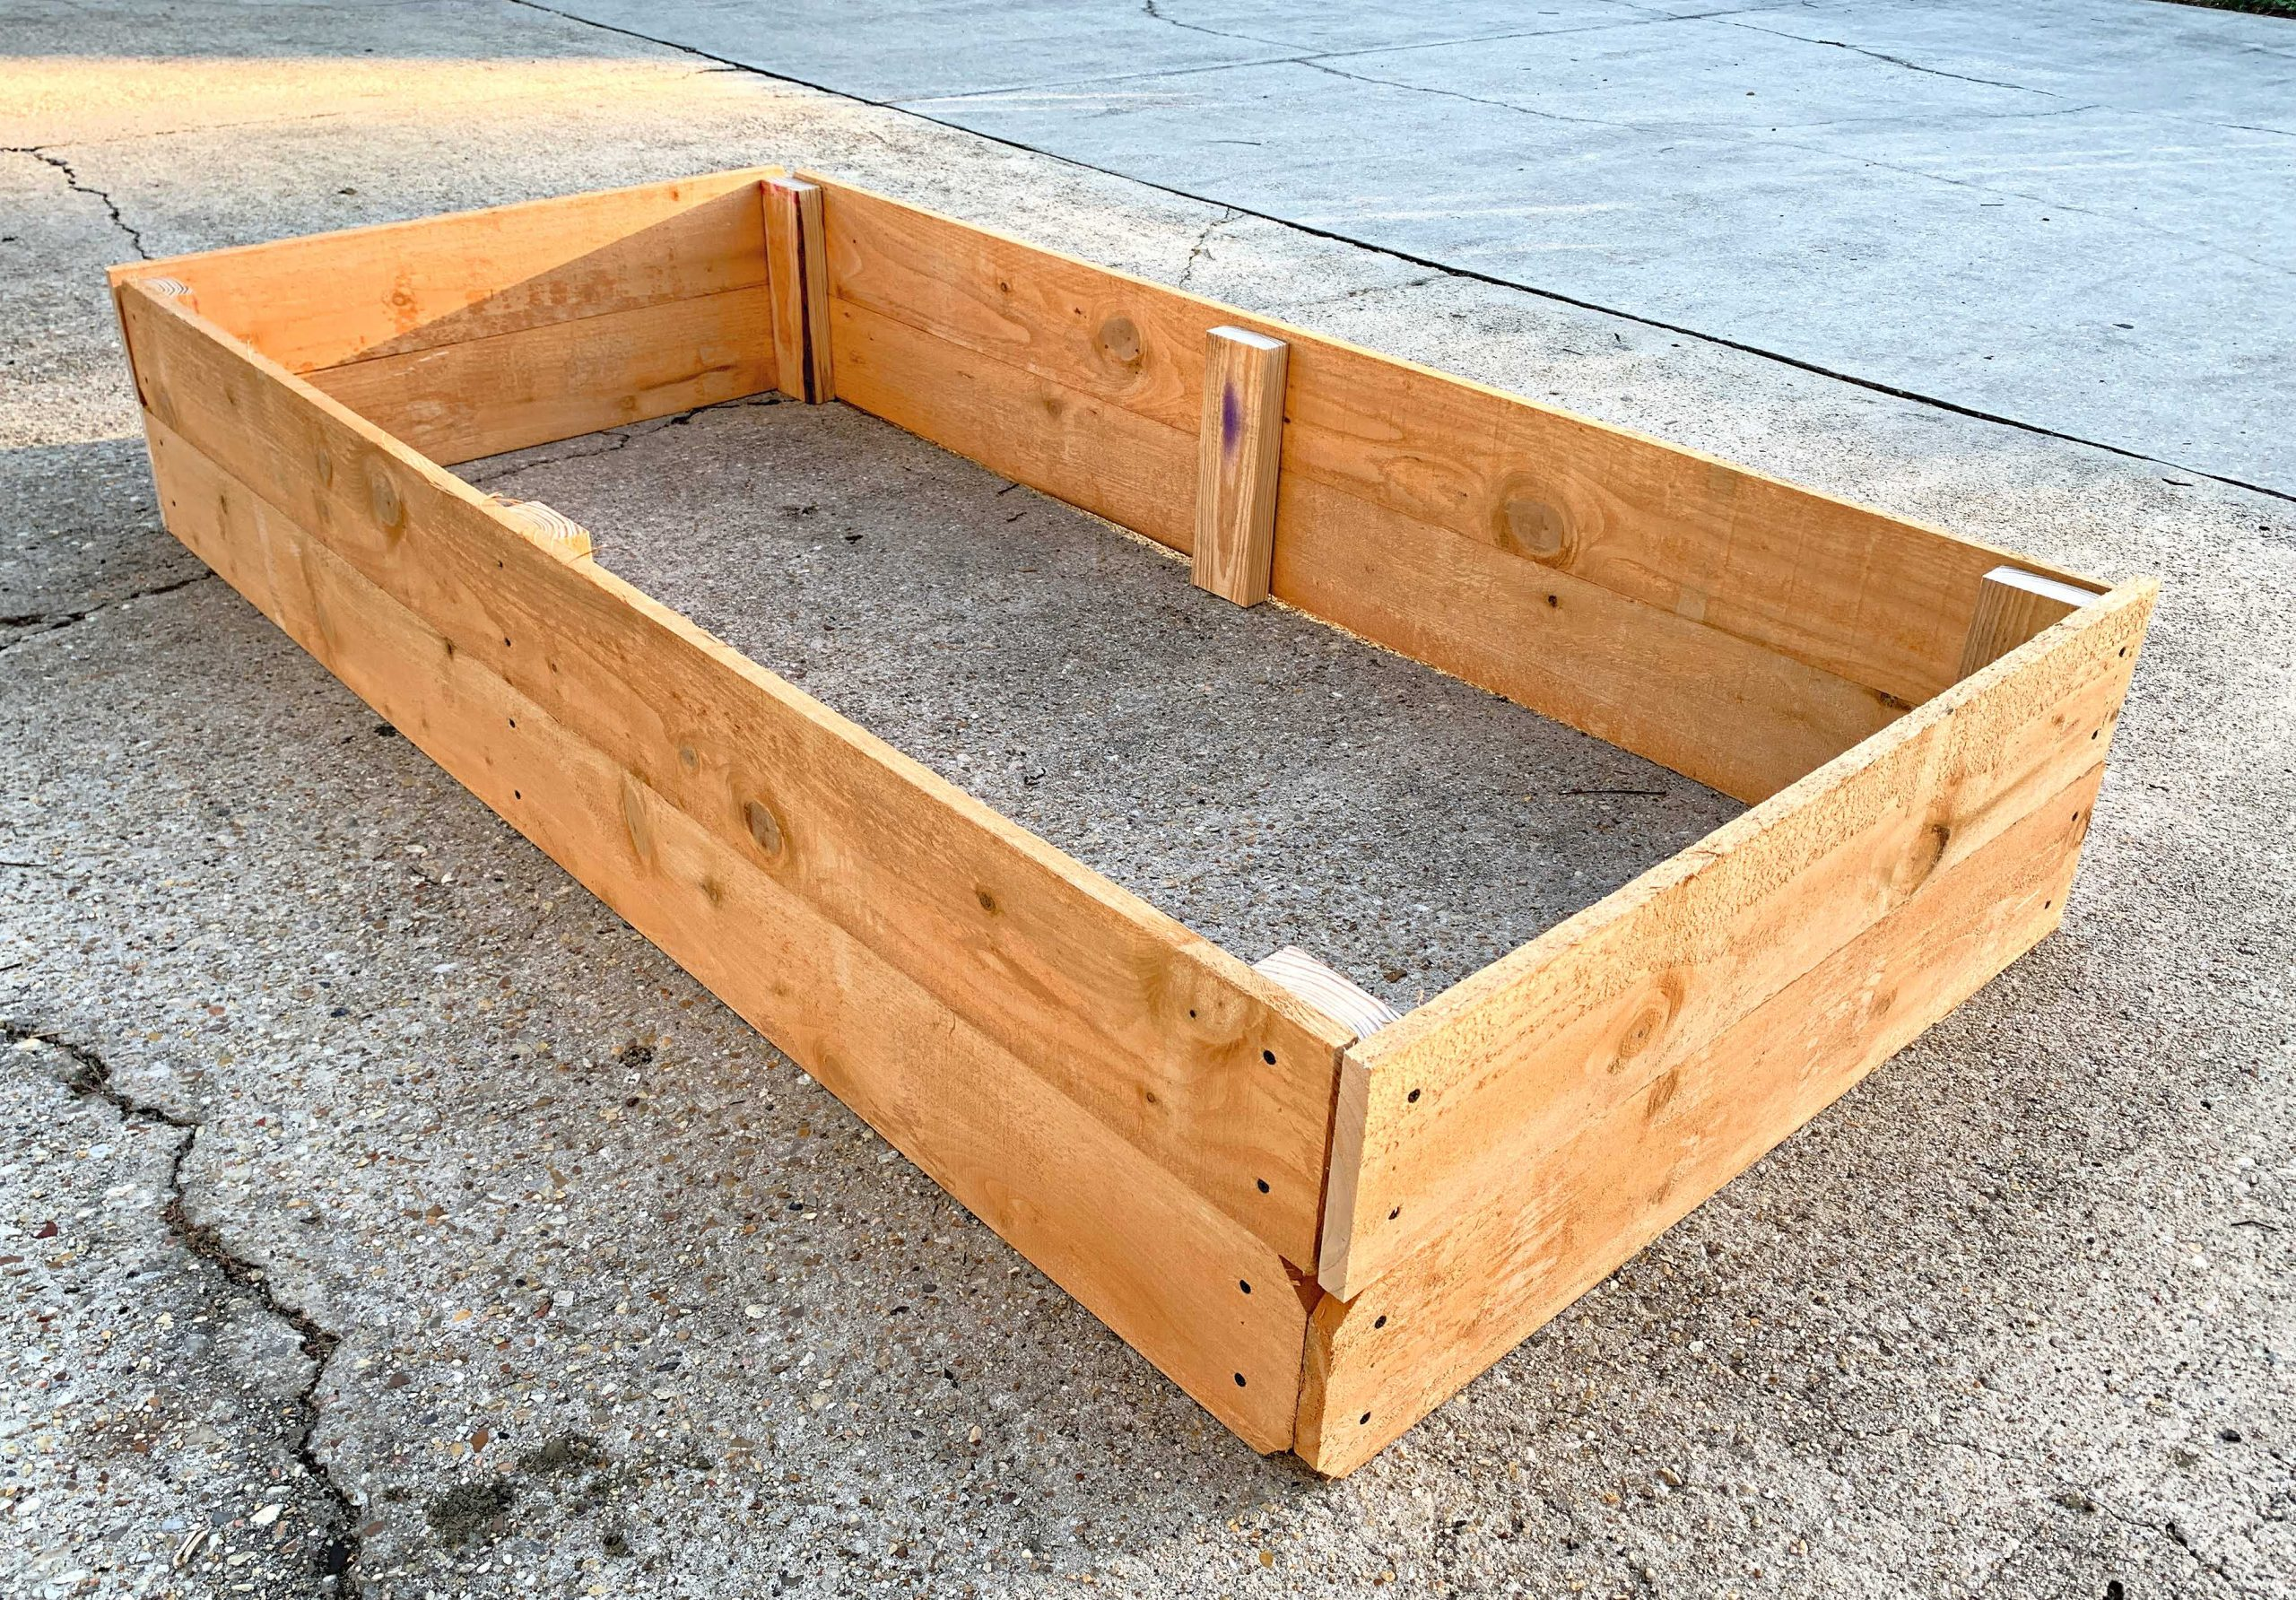 completed raised garden bed box